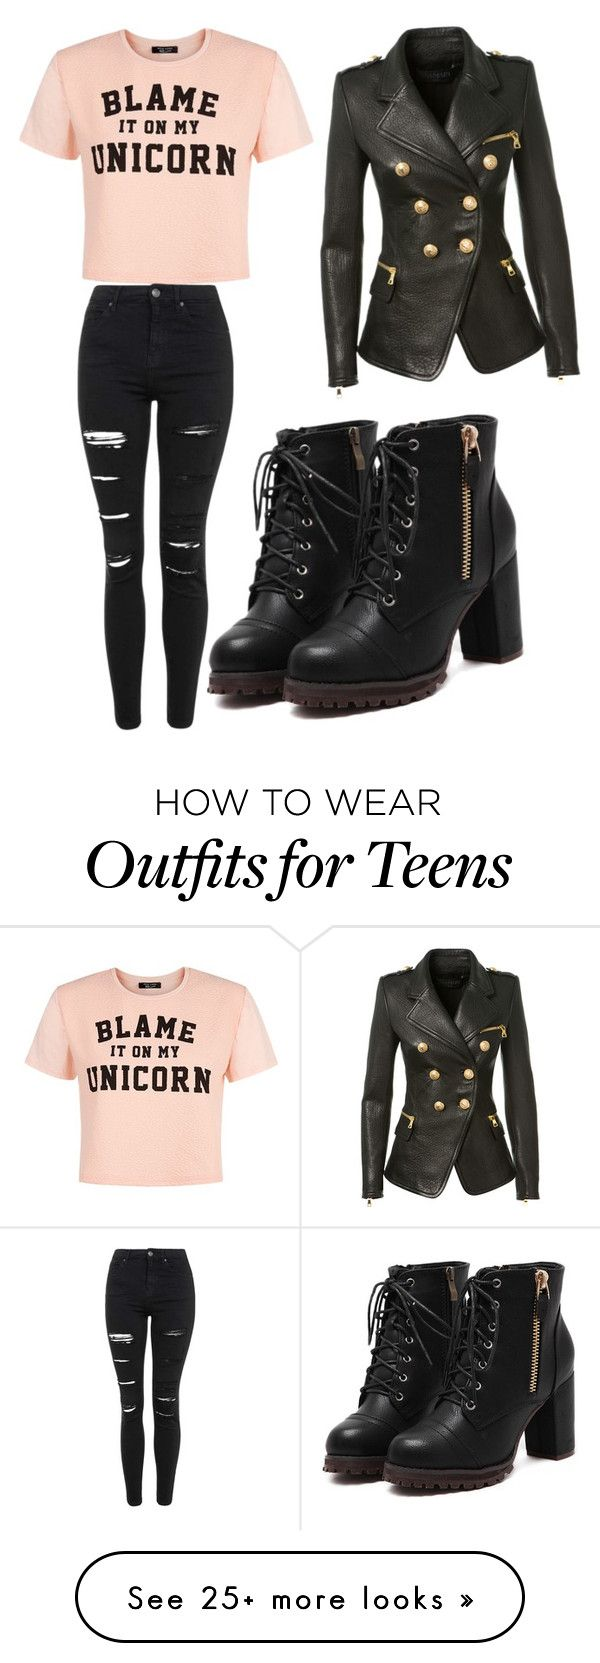 """Untitled #141"" by elizabetiite on Polyvore featuring Topshop, Balmain, women's clothing, women's fashion, women, female, woman, misses and juniors"